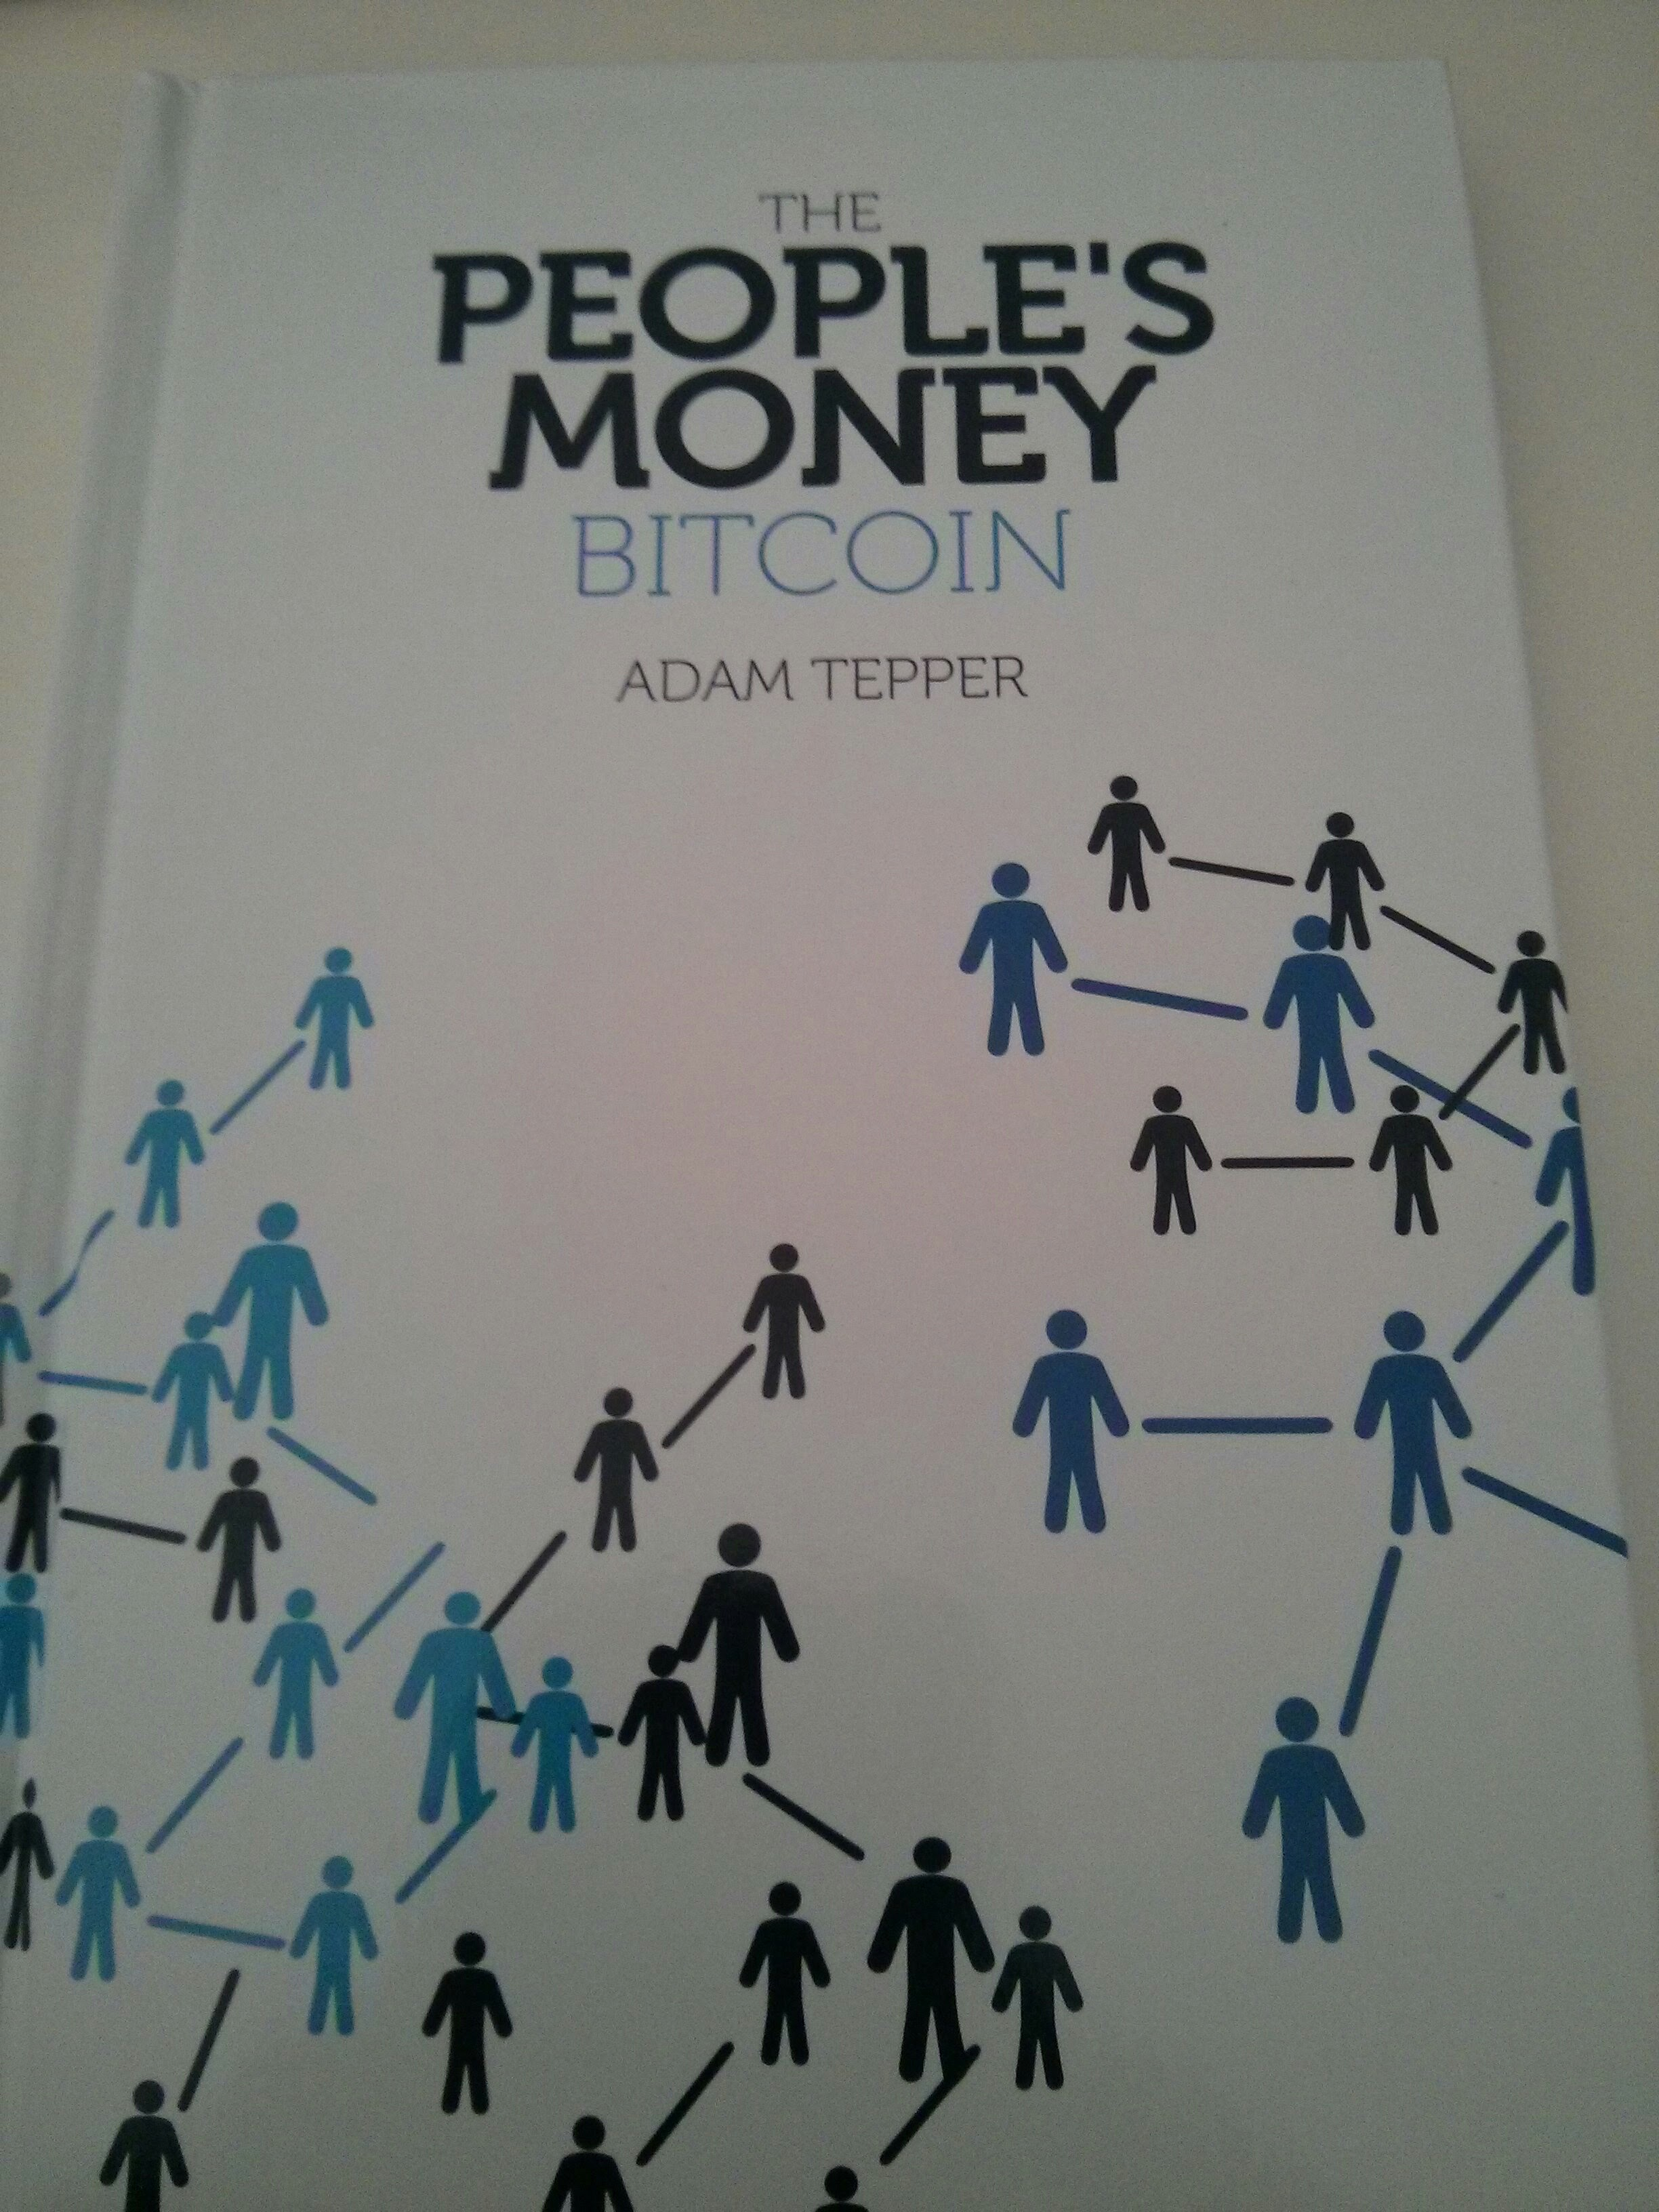 The peoples money bitcoin by Adam Tepper